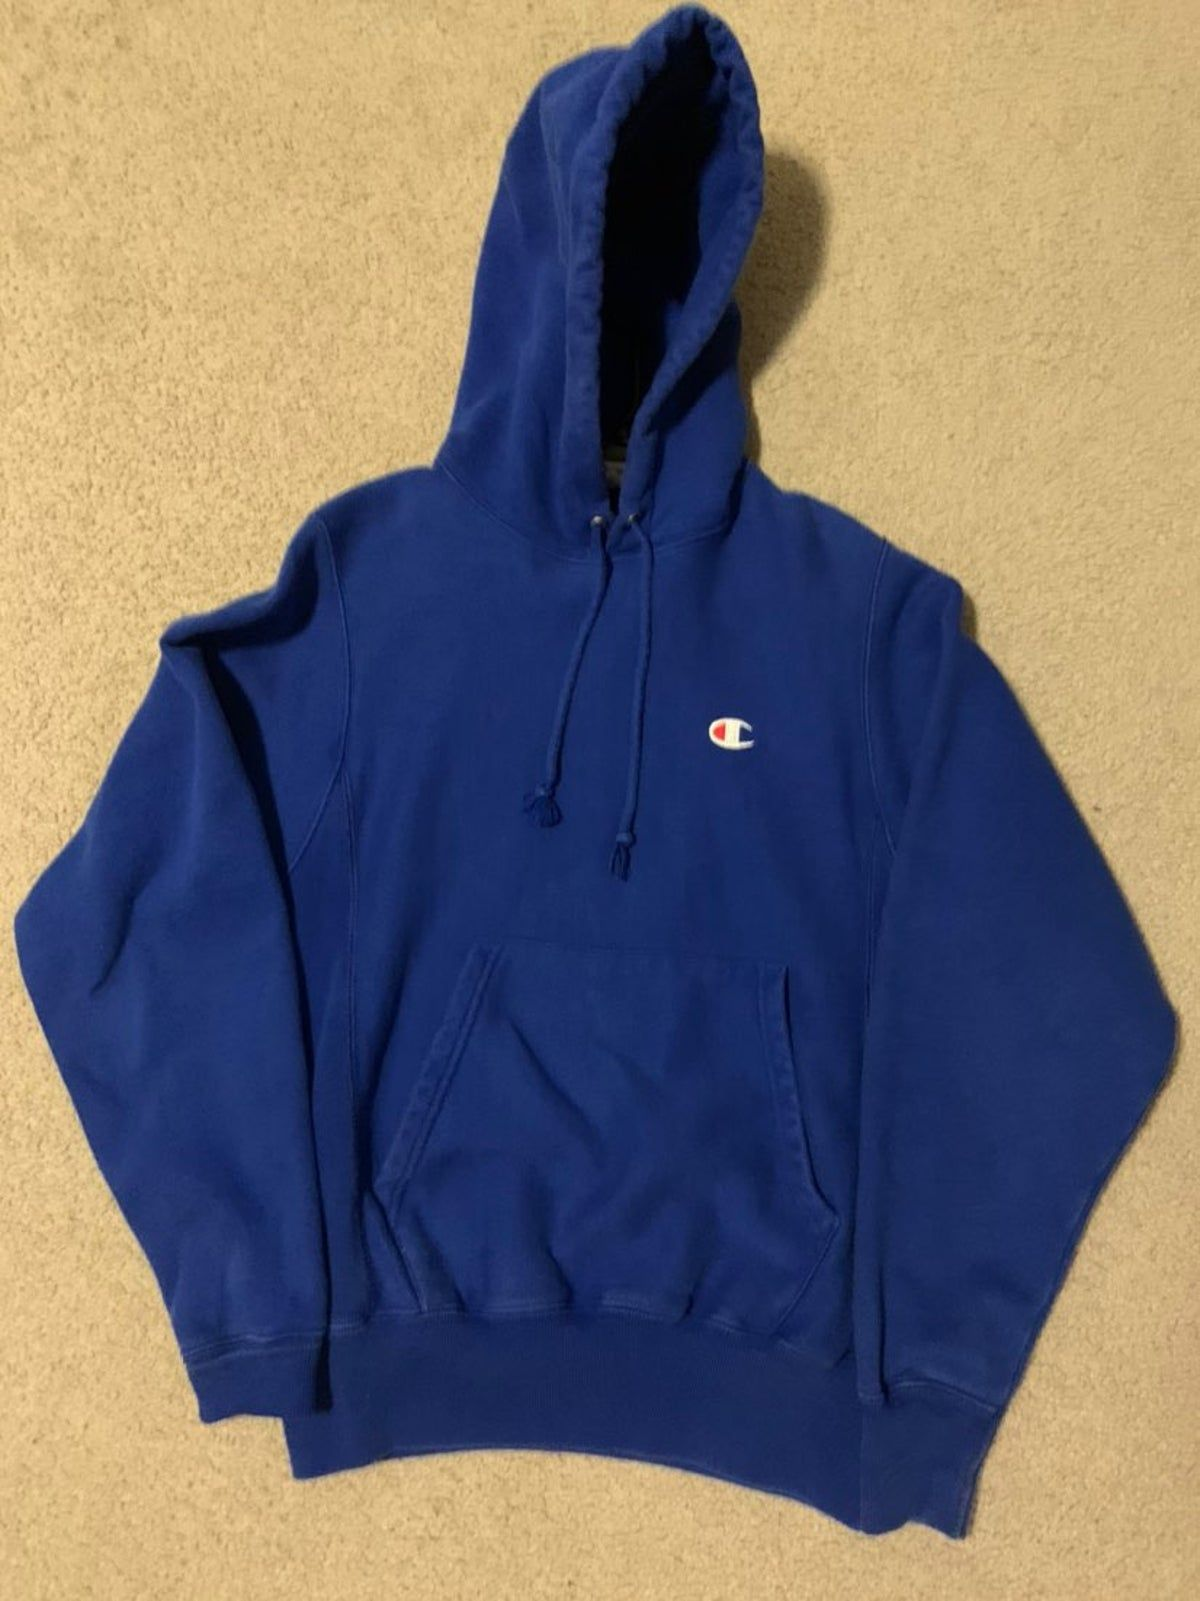 Royal Blue Champion Hoodie In 2021 Blue Champion Hoodie Champion Hoodie Purple Champion Hoodie [ 1601 x 1200 Pixel ]